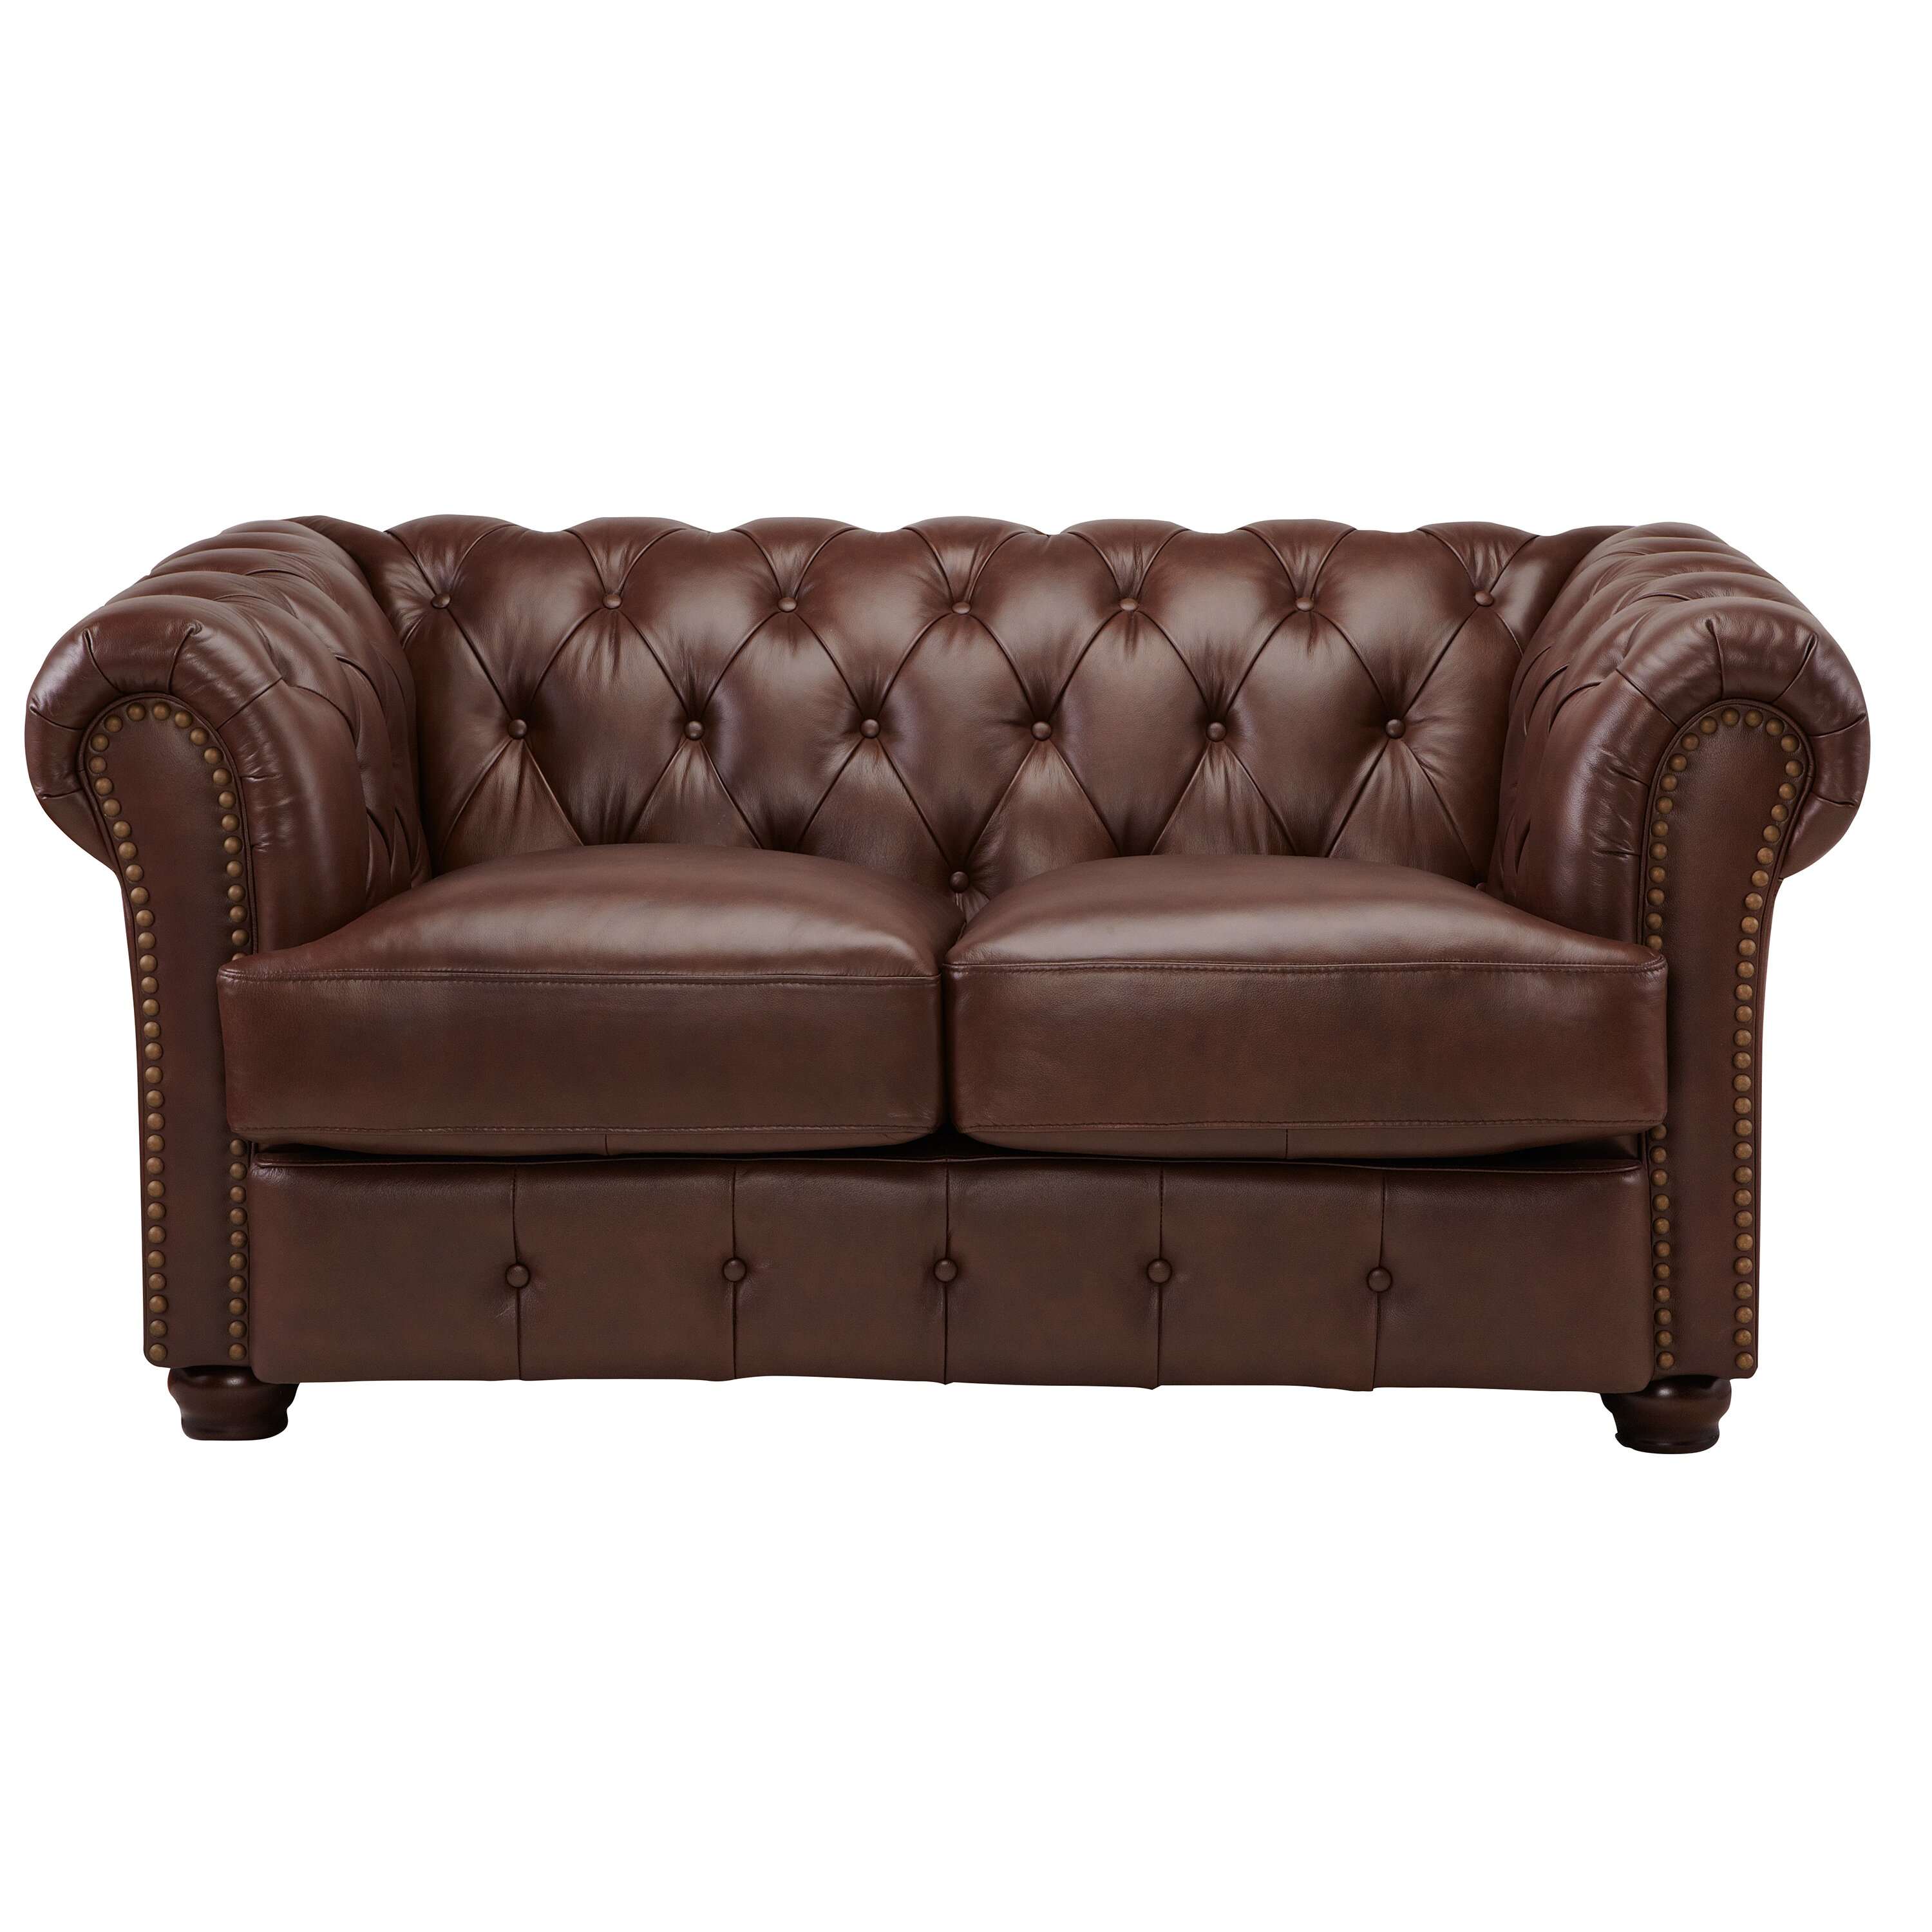 Dlnd Decoro Barrister Stationary Leather Loveseat